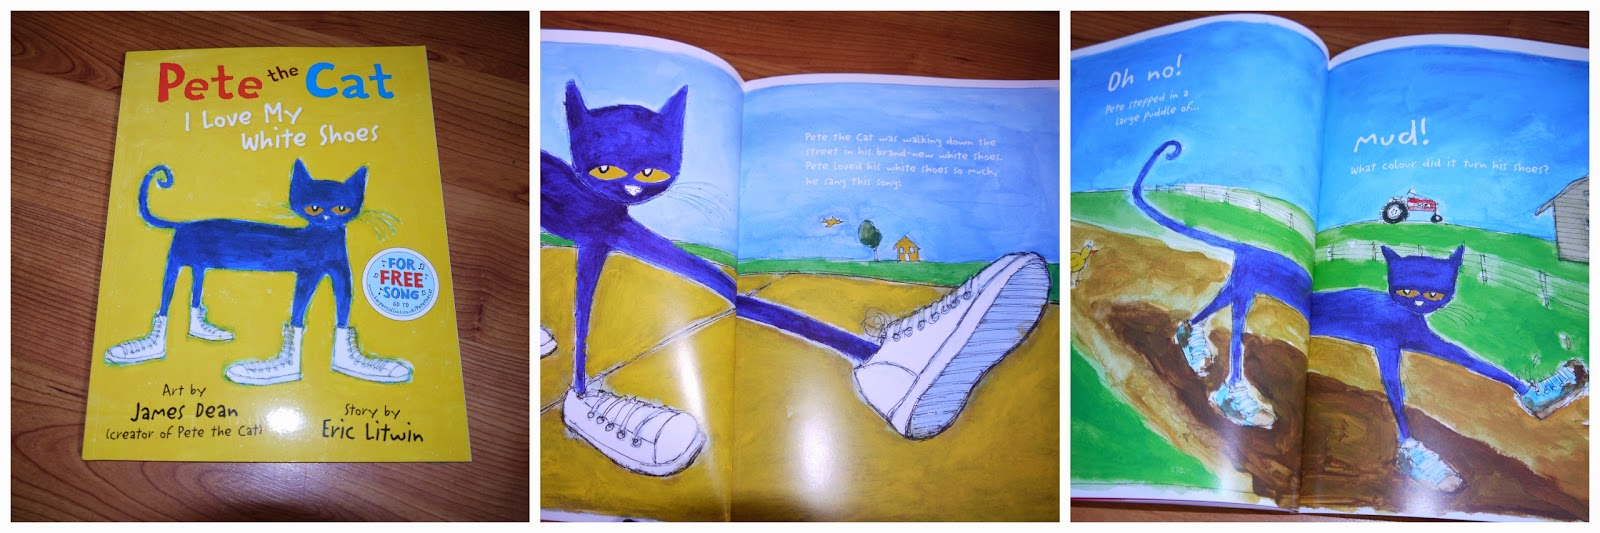 Pete the Cat, storybook